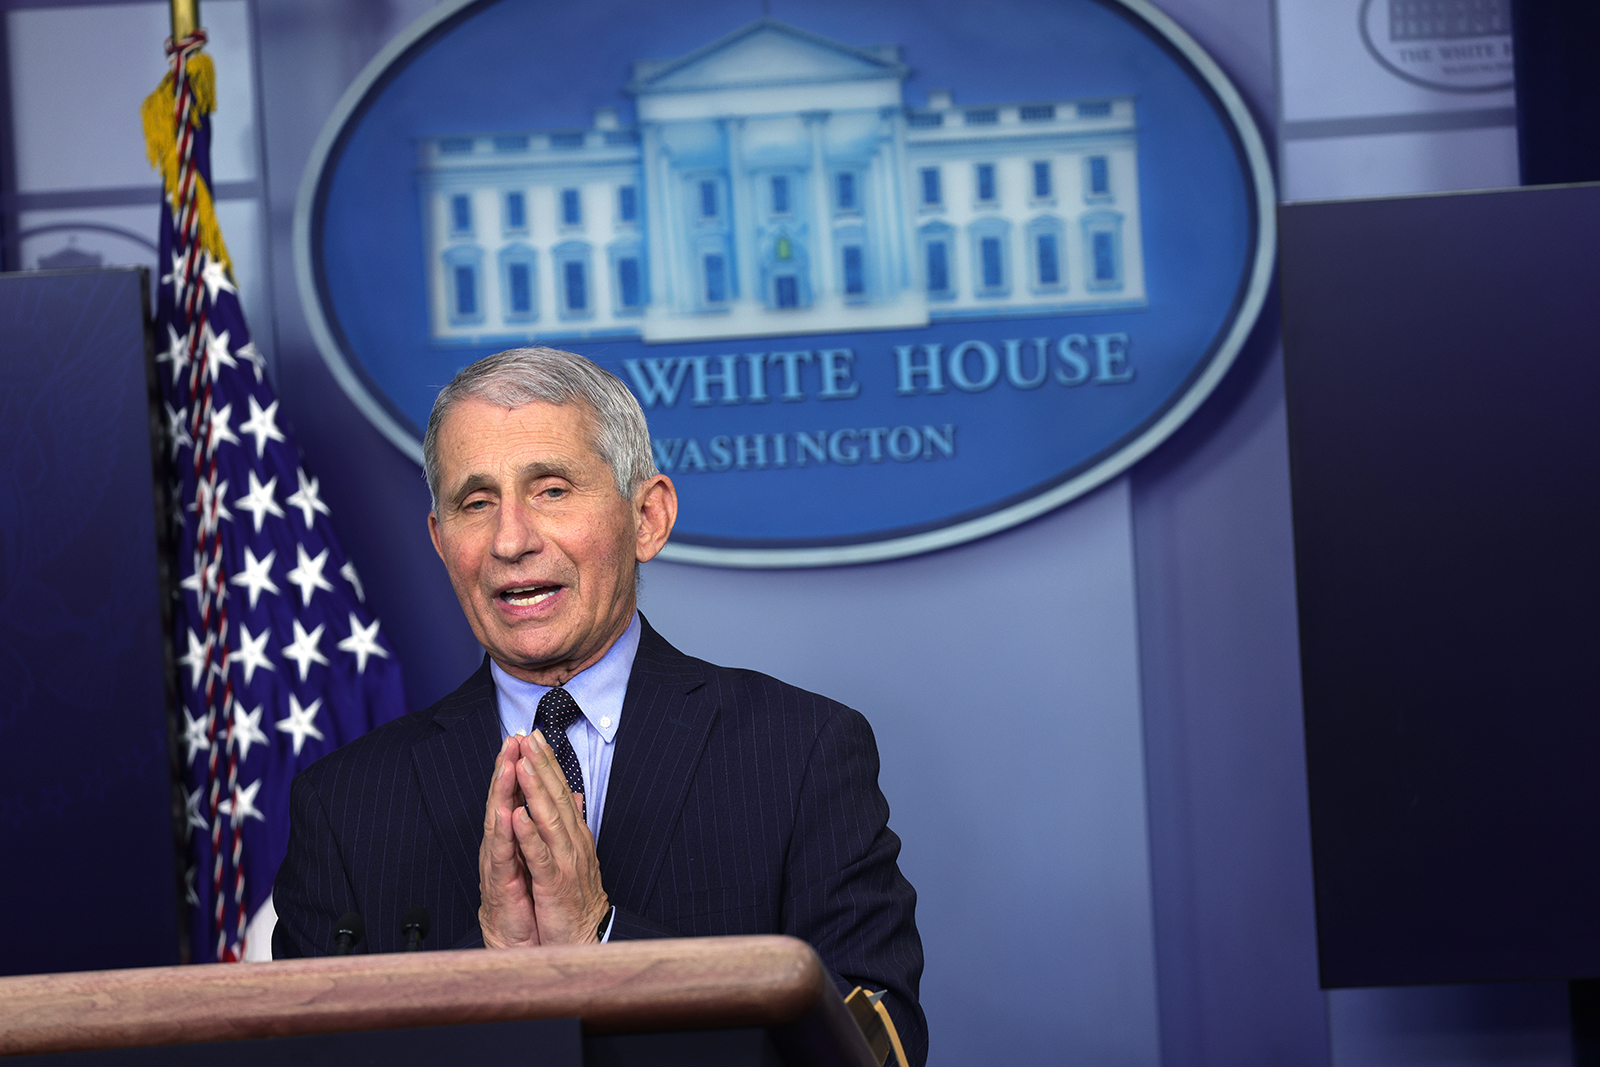 Dr. Anthony Fauci, director of the National Institute of Allergy and Infectious Diseases, speaks during a White House briefing in Washington, DC, on January 21.